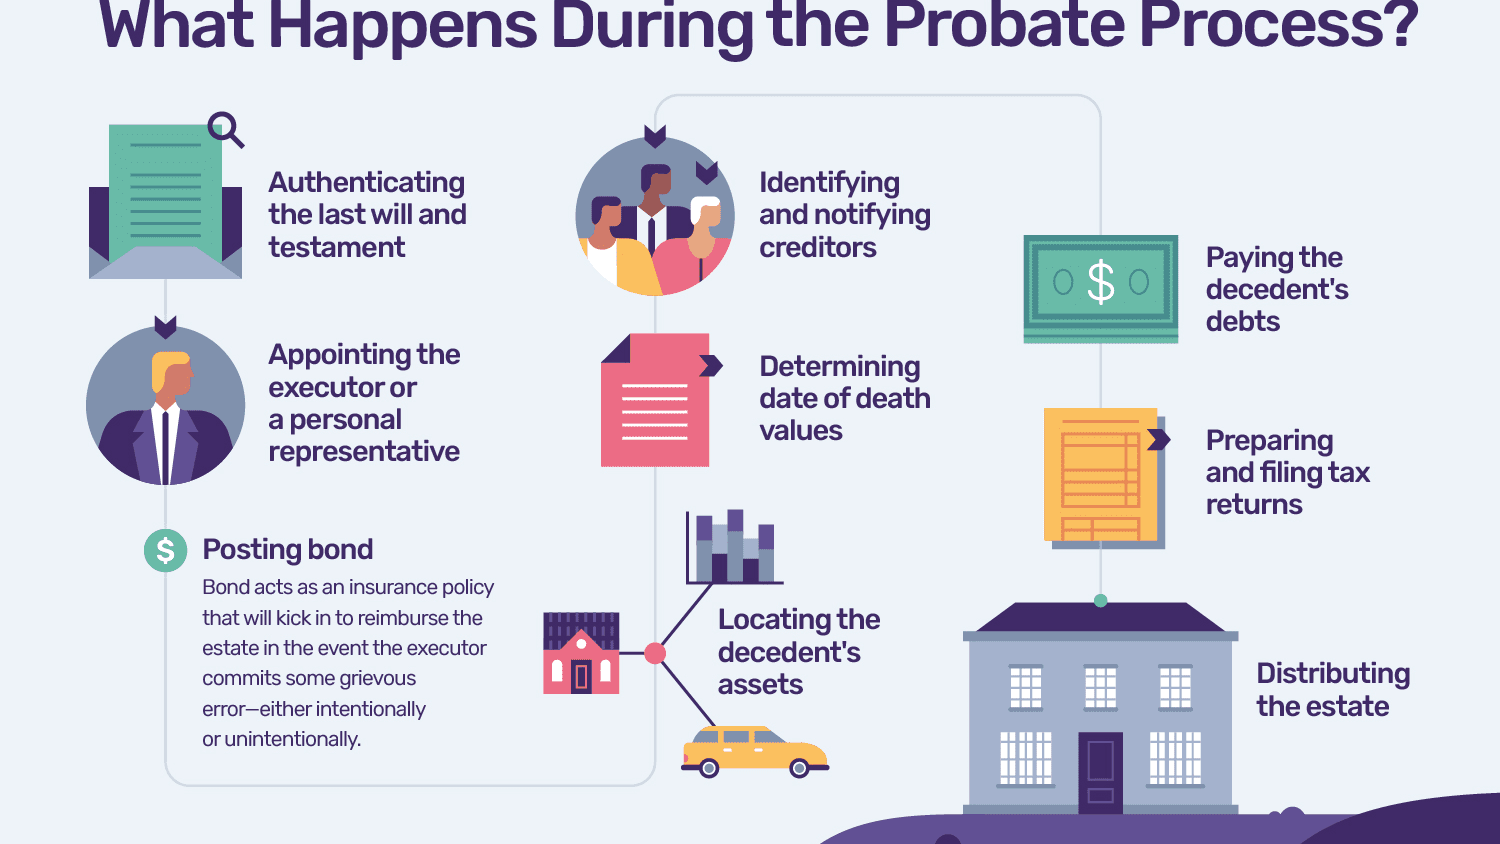 A Step-by-Step Guide onWhat Happens During Probate